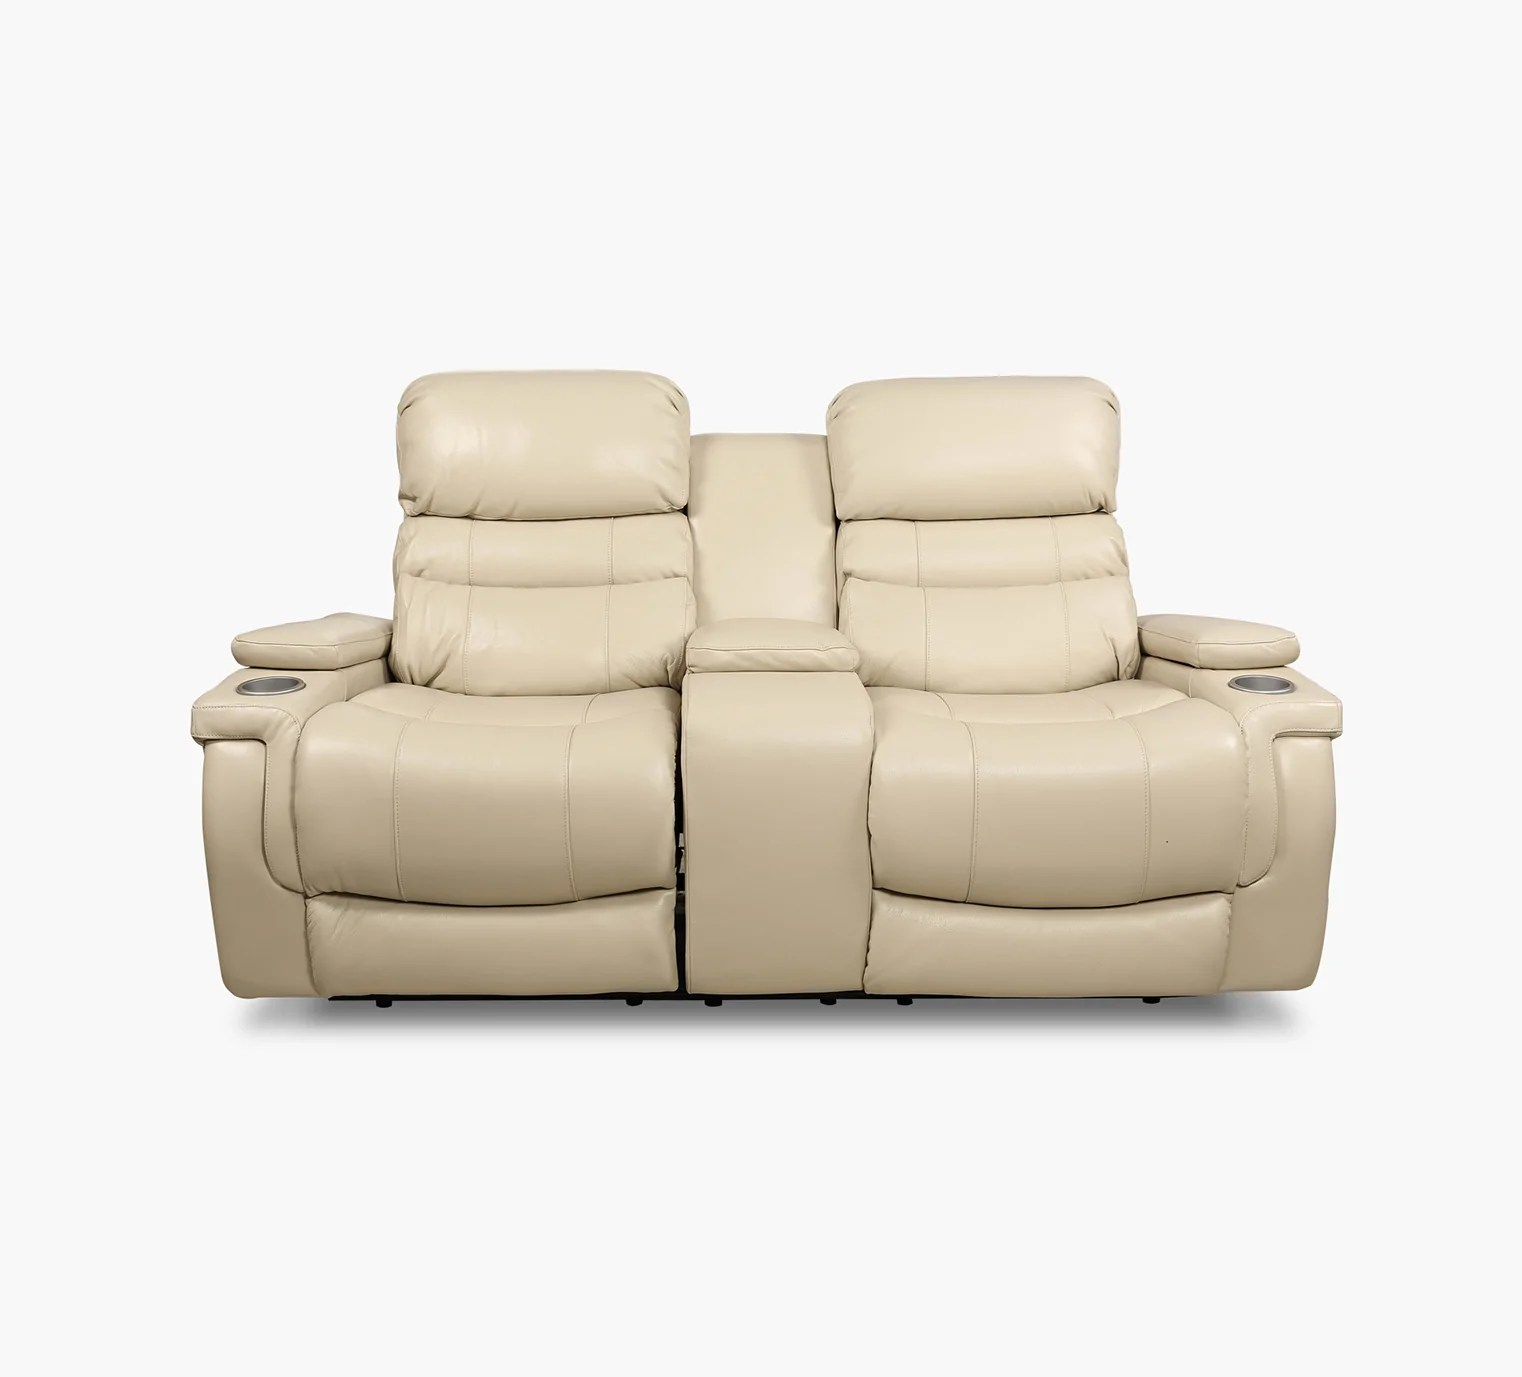 Https Www Kanesfurniture Com Daily Https Www Kanesfurniture Com Products Cutler Bay Sofa 2021 04 24t21 41 50 04 00 Daily Https Cdn Shopify Com S Files 1 0075 2815 3206 Products 001159284 Jpg V 1582130440 Cutler Bay Sofa Https Www